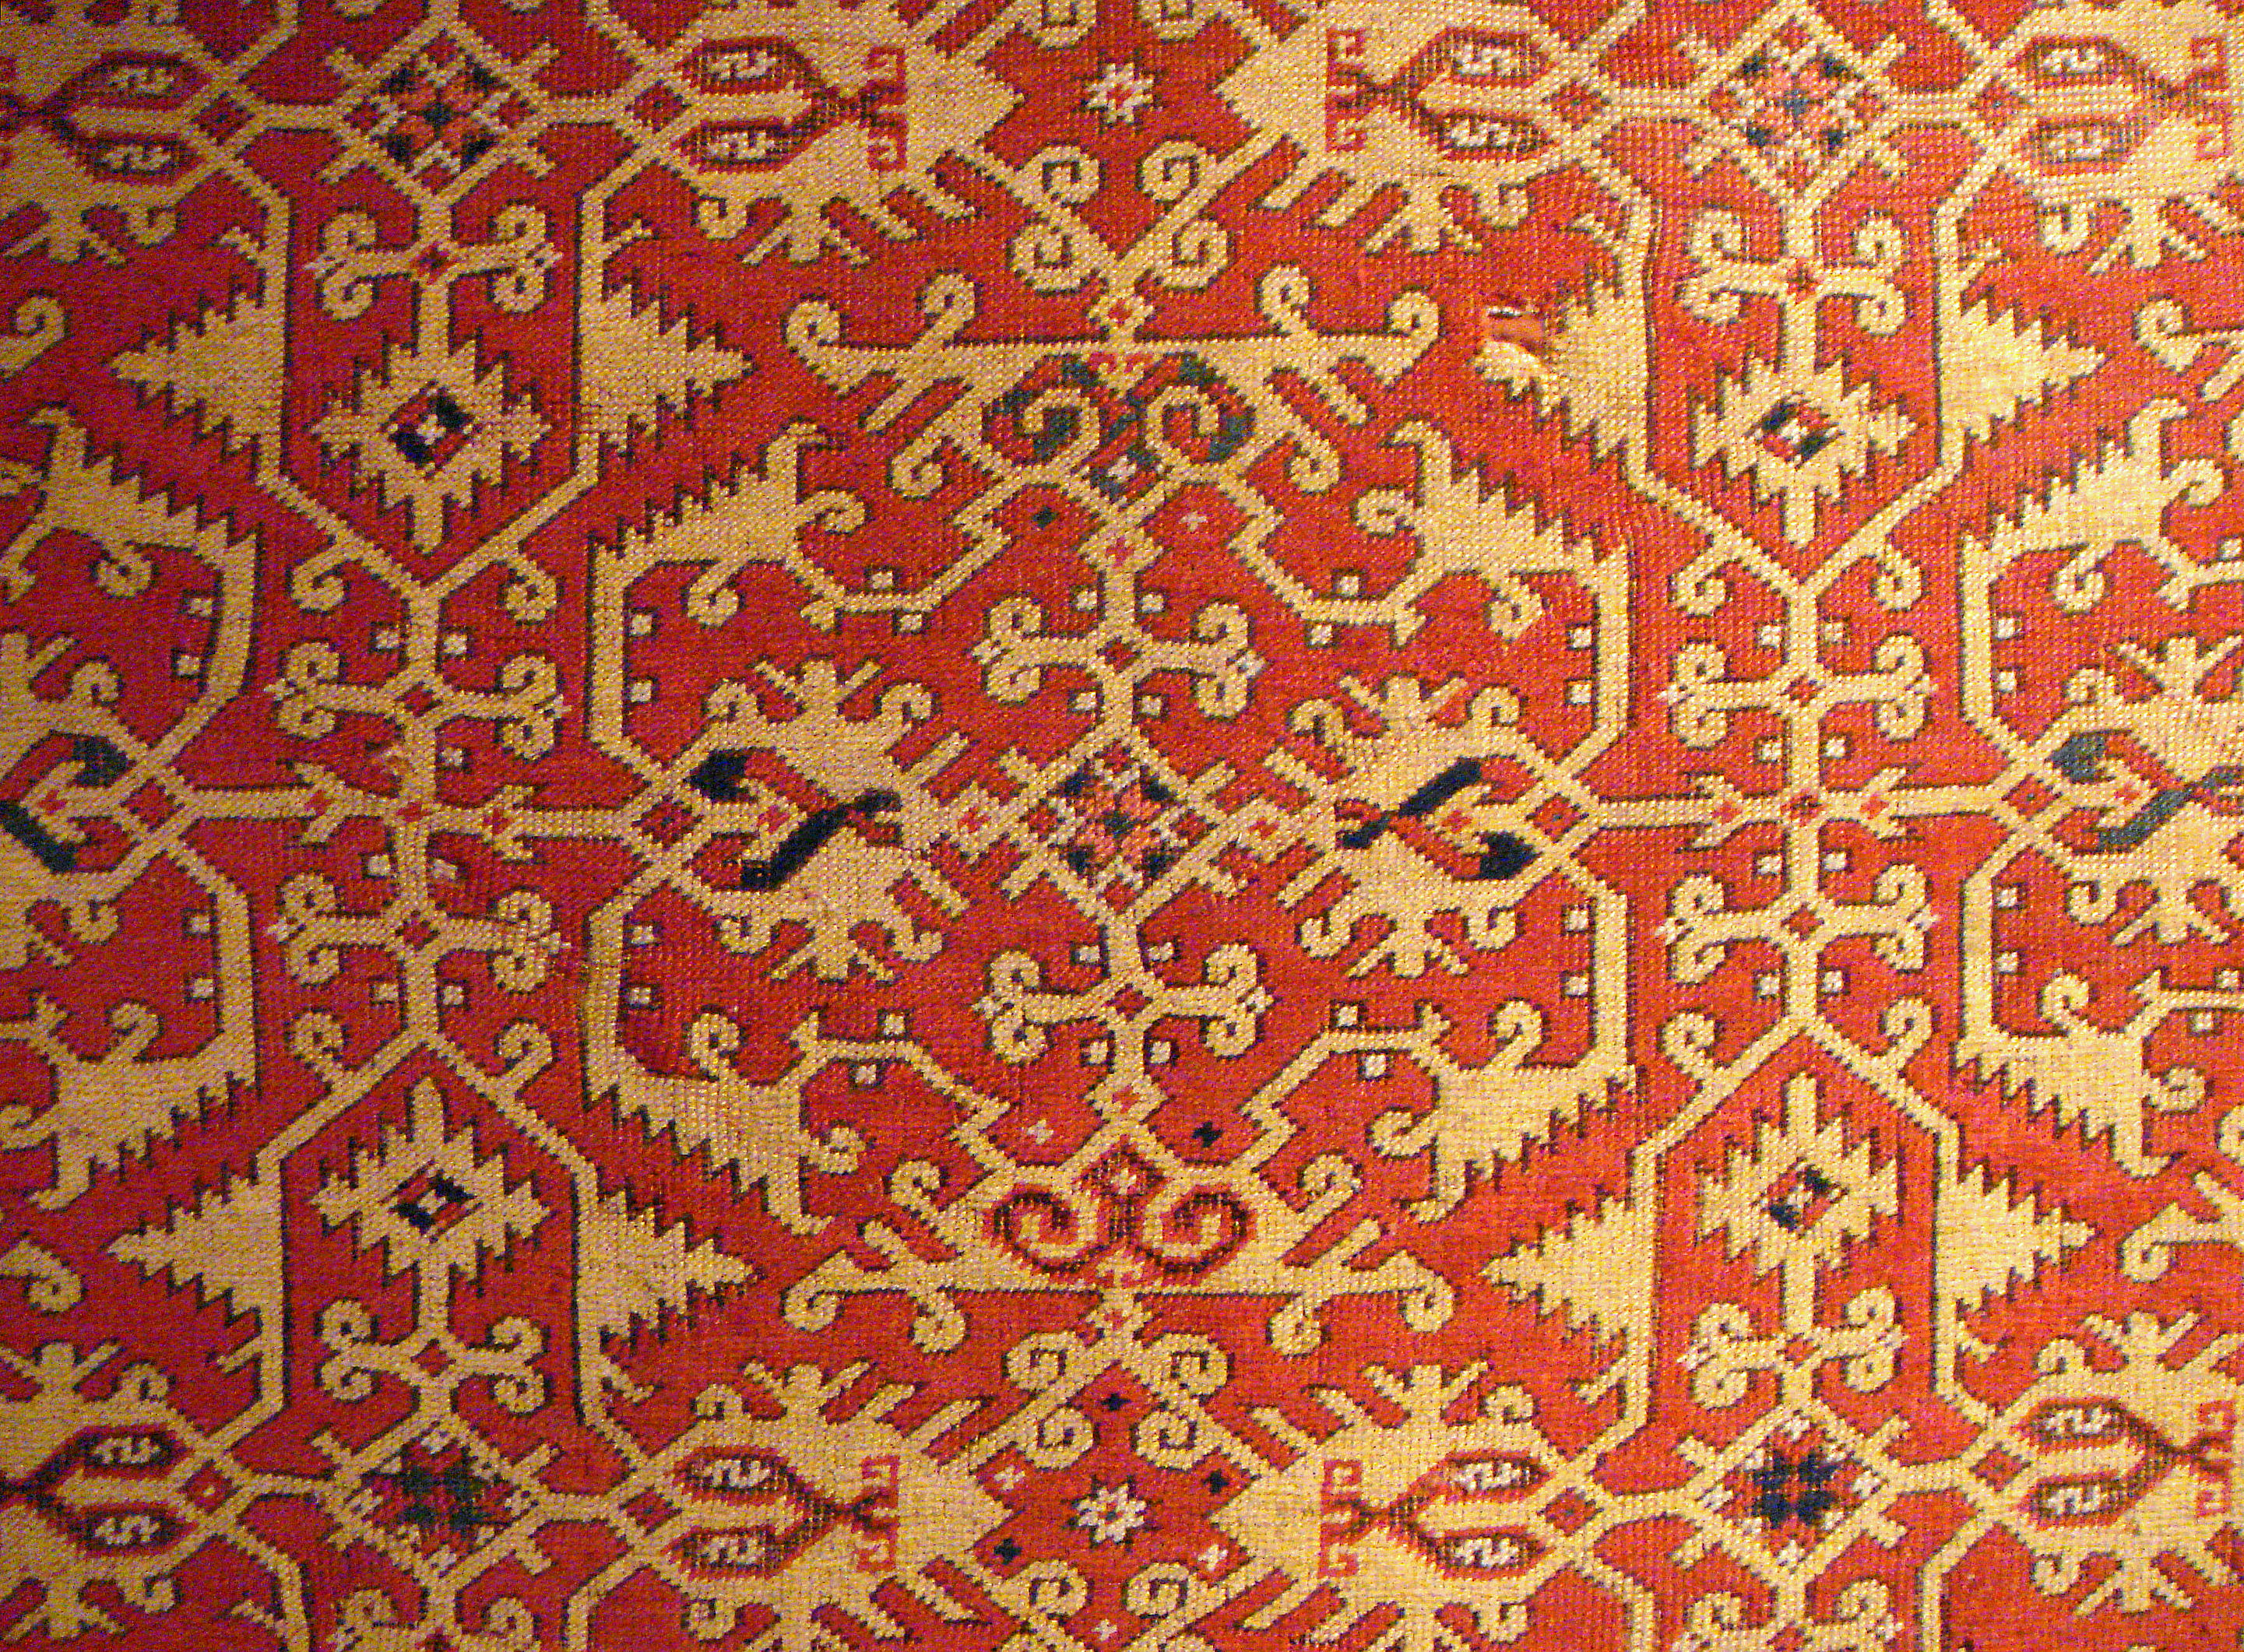 Description Lotto carpet design Usak 16th century.jpg: commons.wikimedia.org/wiki/File:Lotto_carpet_design_Usak_16th...